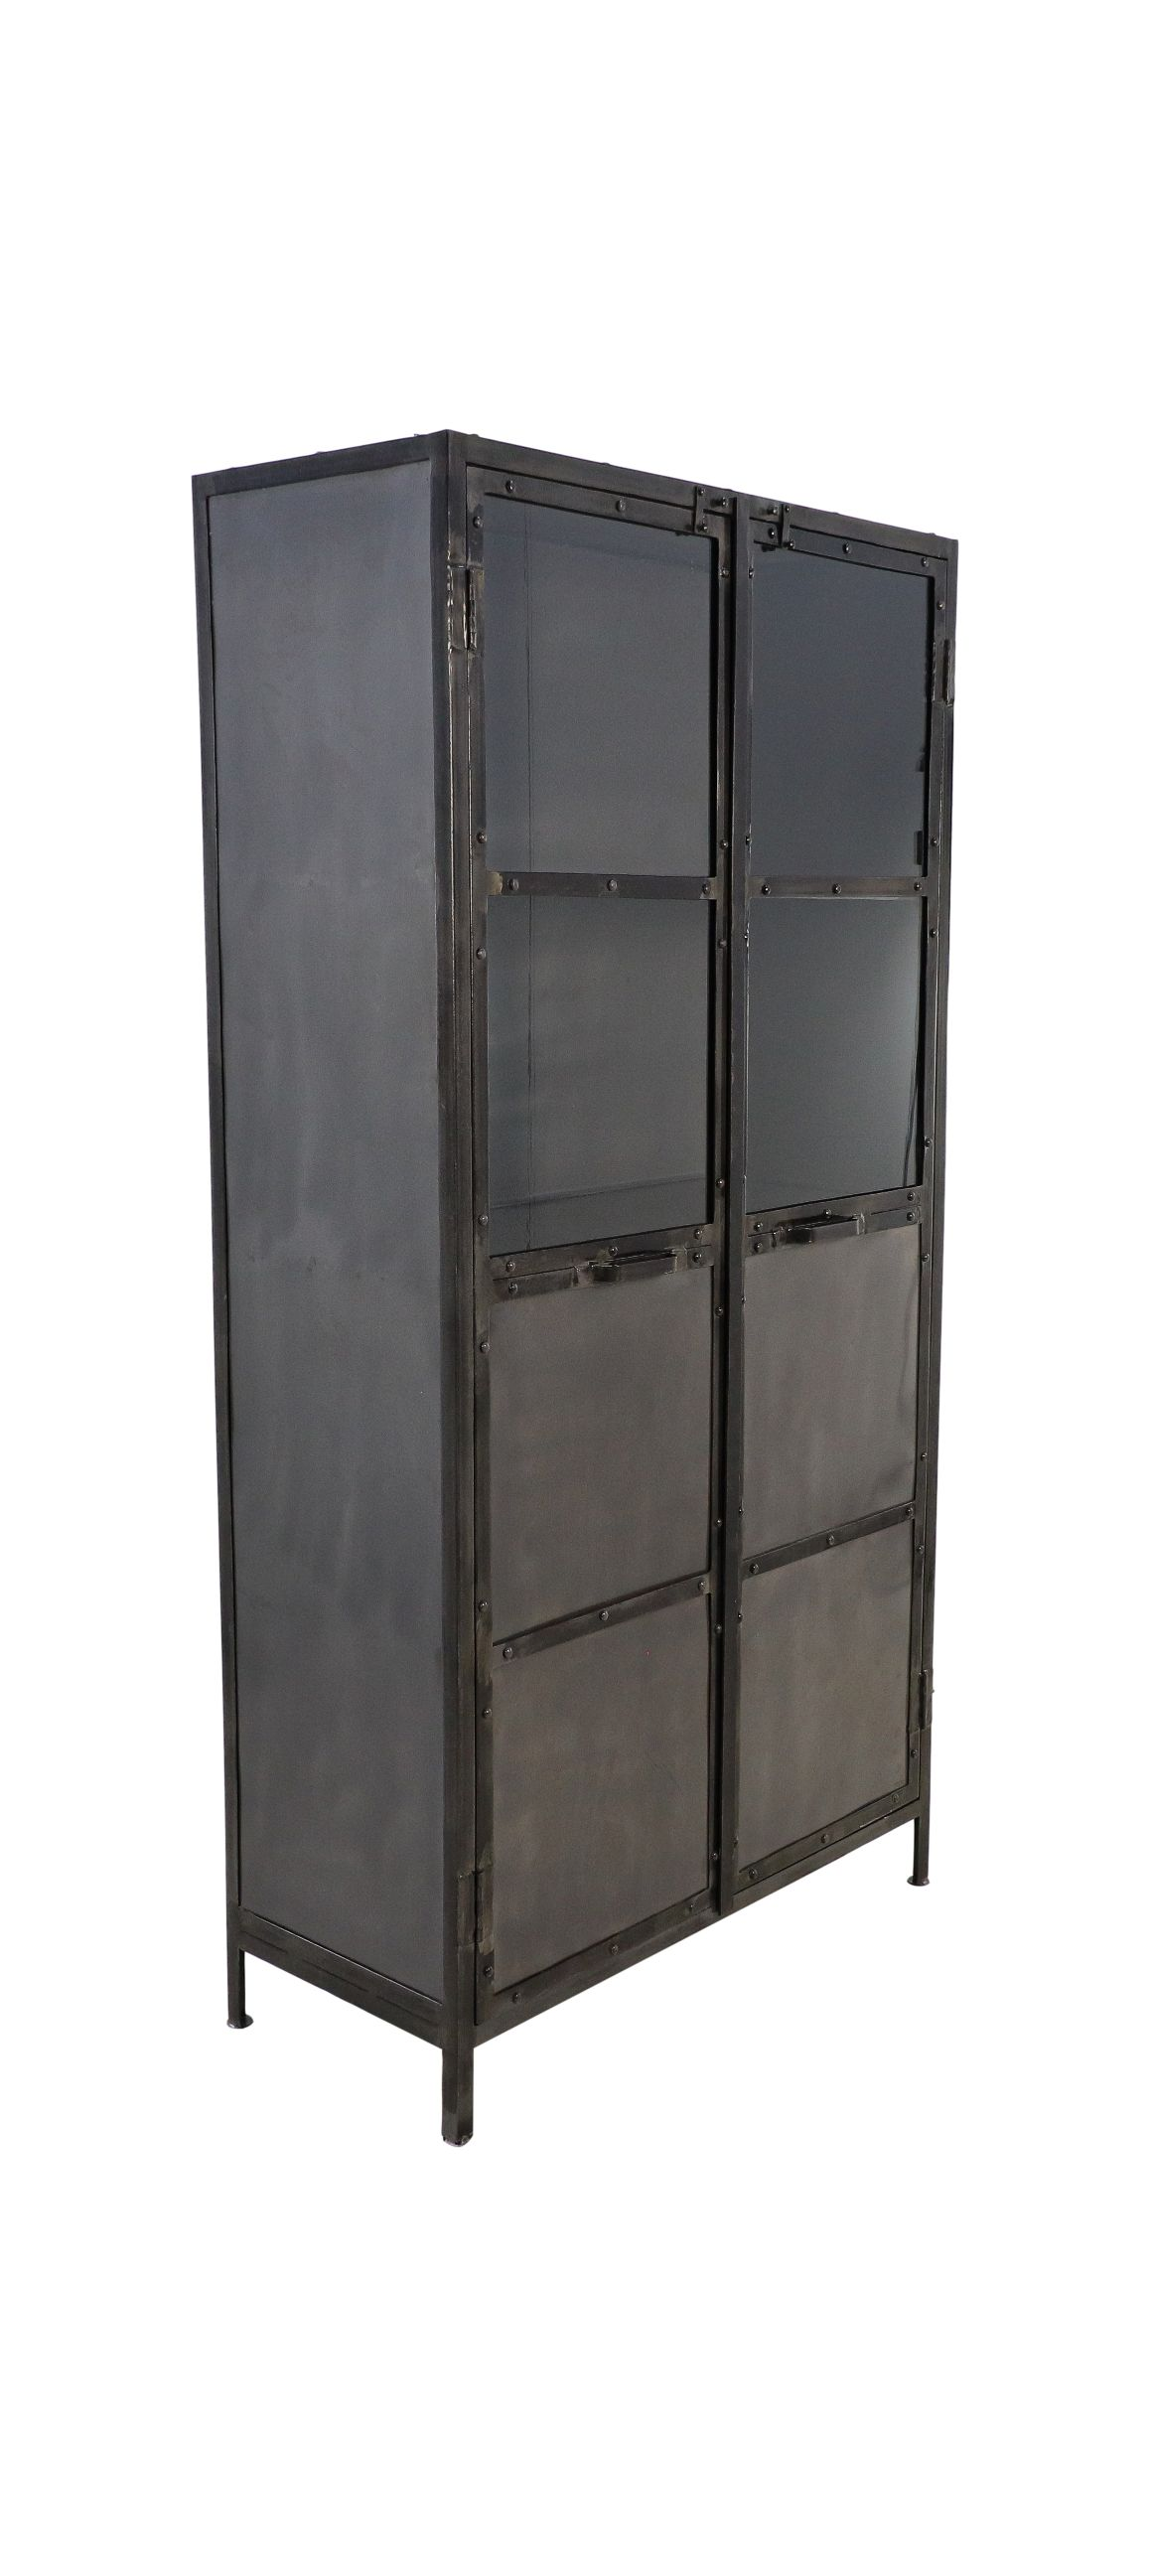 Vitrinekast Brooklyn - 90x40x180 - Natural Steel - Ijzer/glas